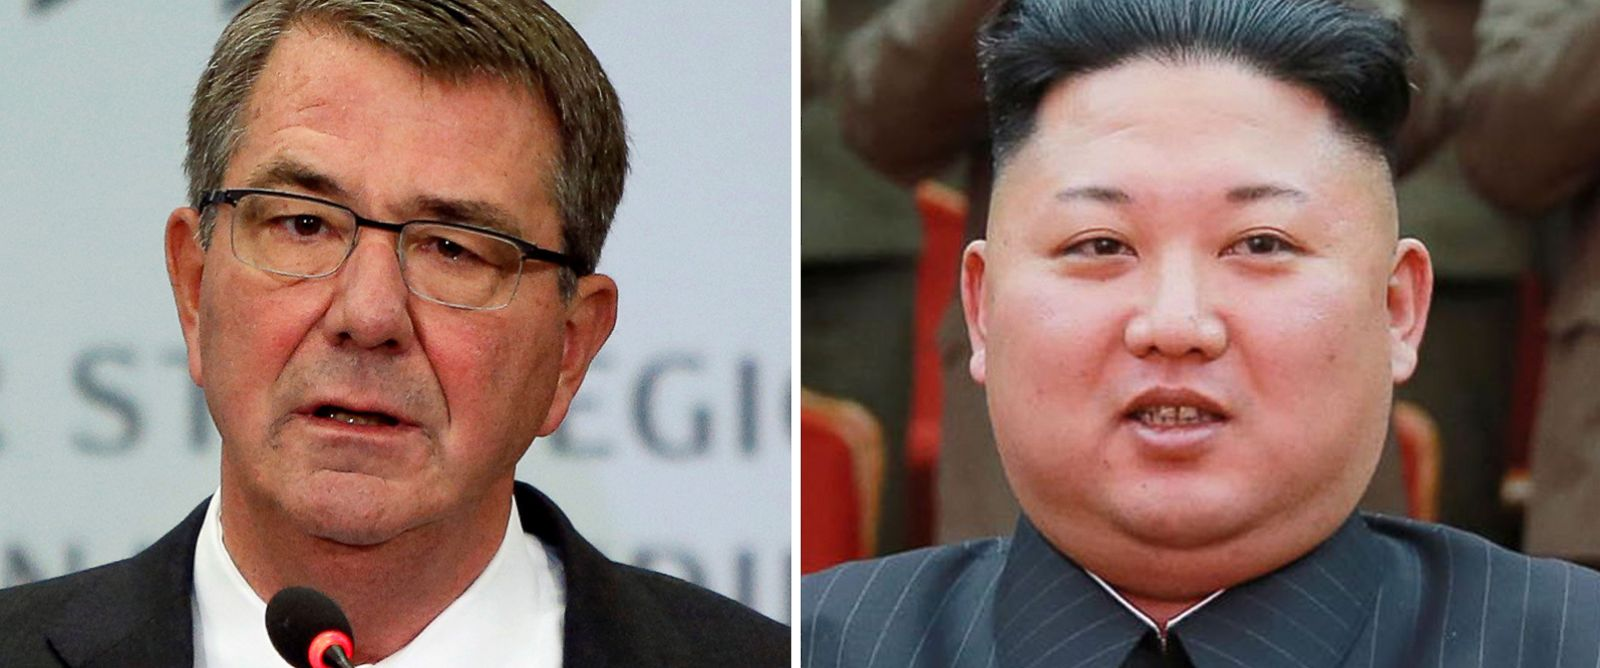 PHOTO: (L-R) Pictured are U.S. Defense Secretary Ash Carter in Washington, Oct. 28, 2016 and North Korean leader Kim Jong-Un in Pyongyang, Feb. 22, 2017.